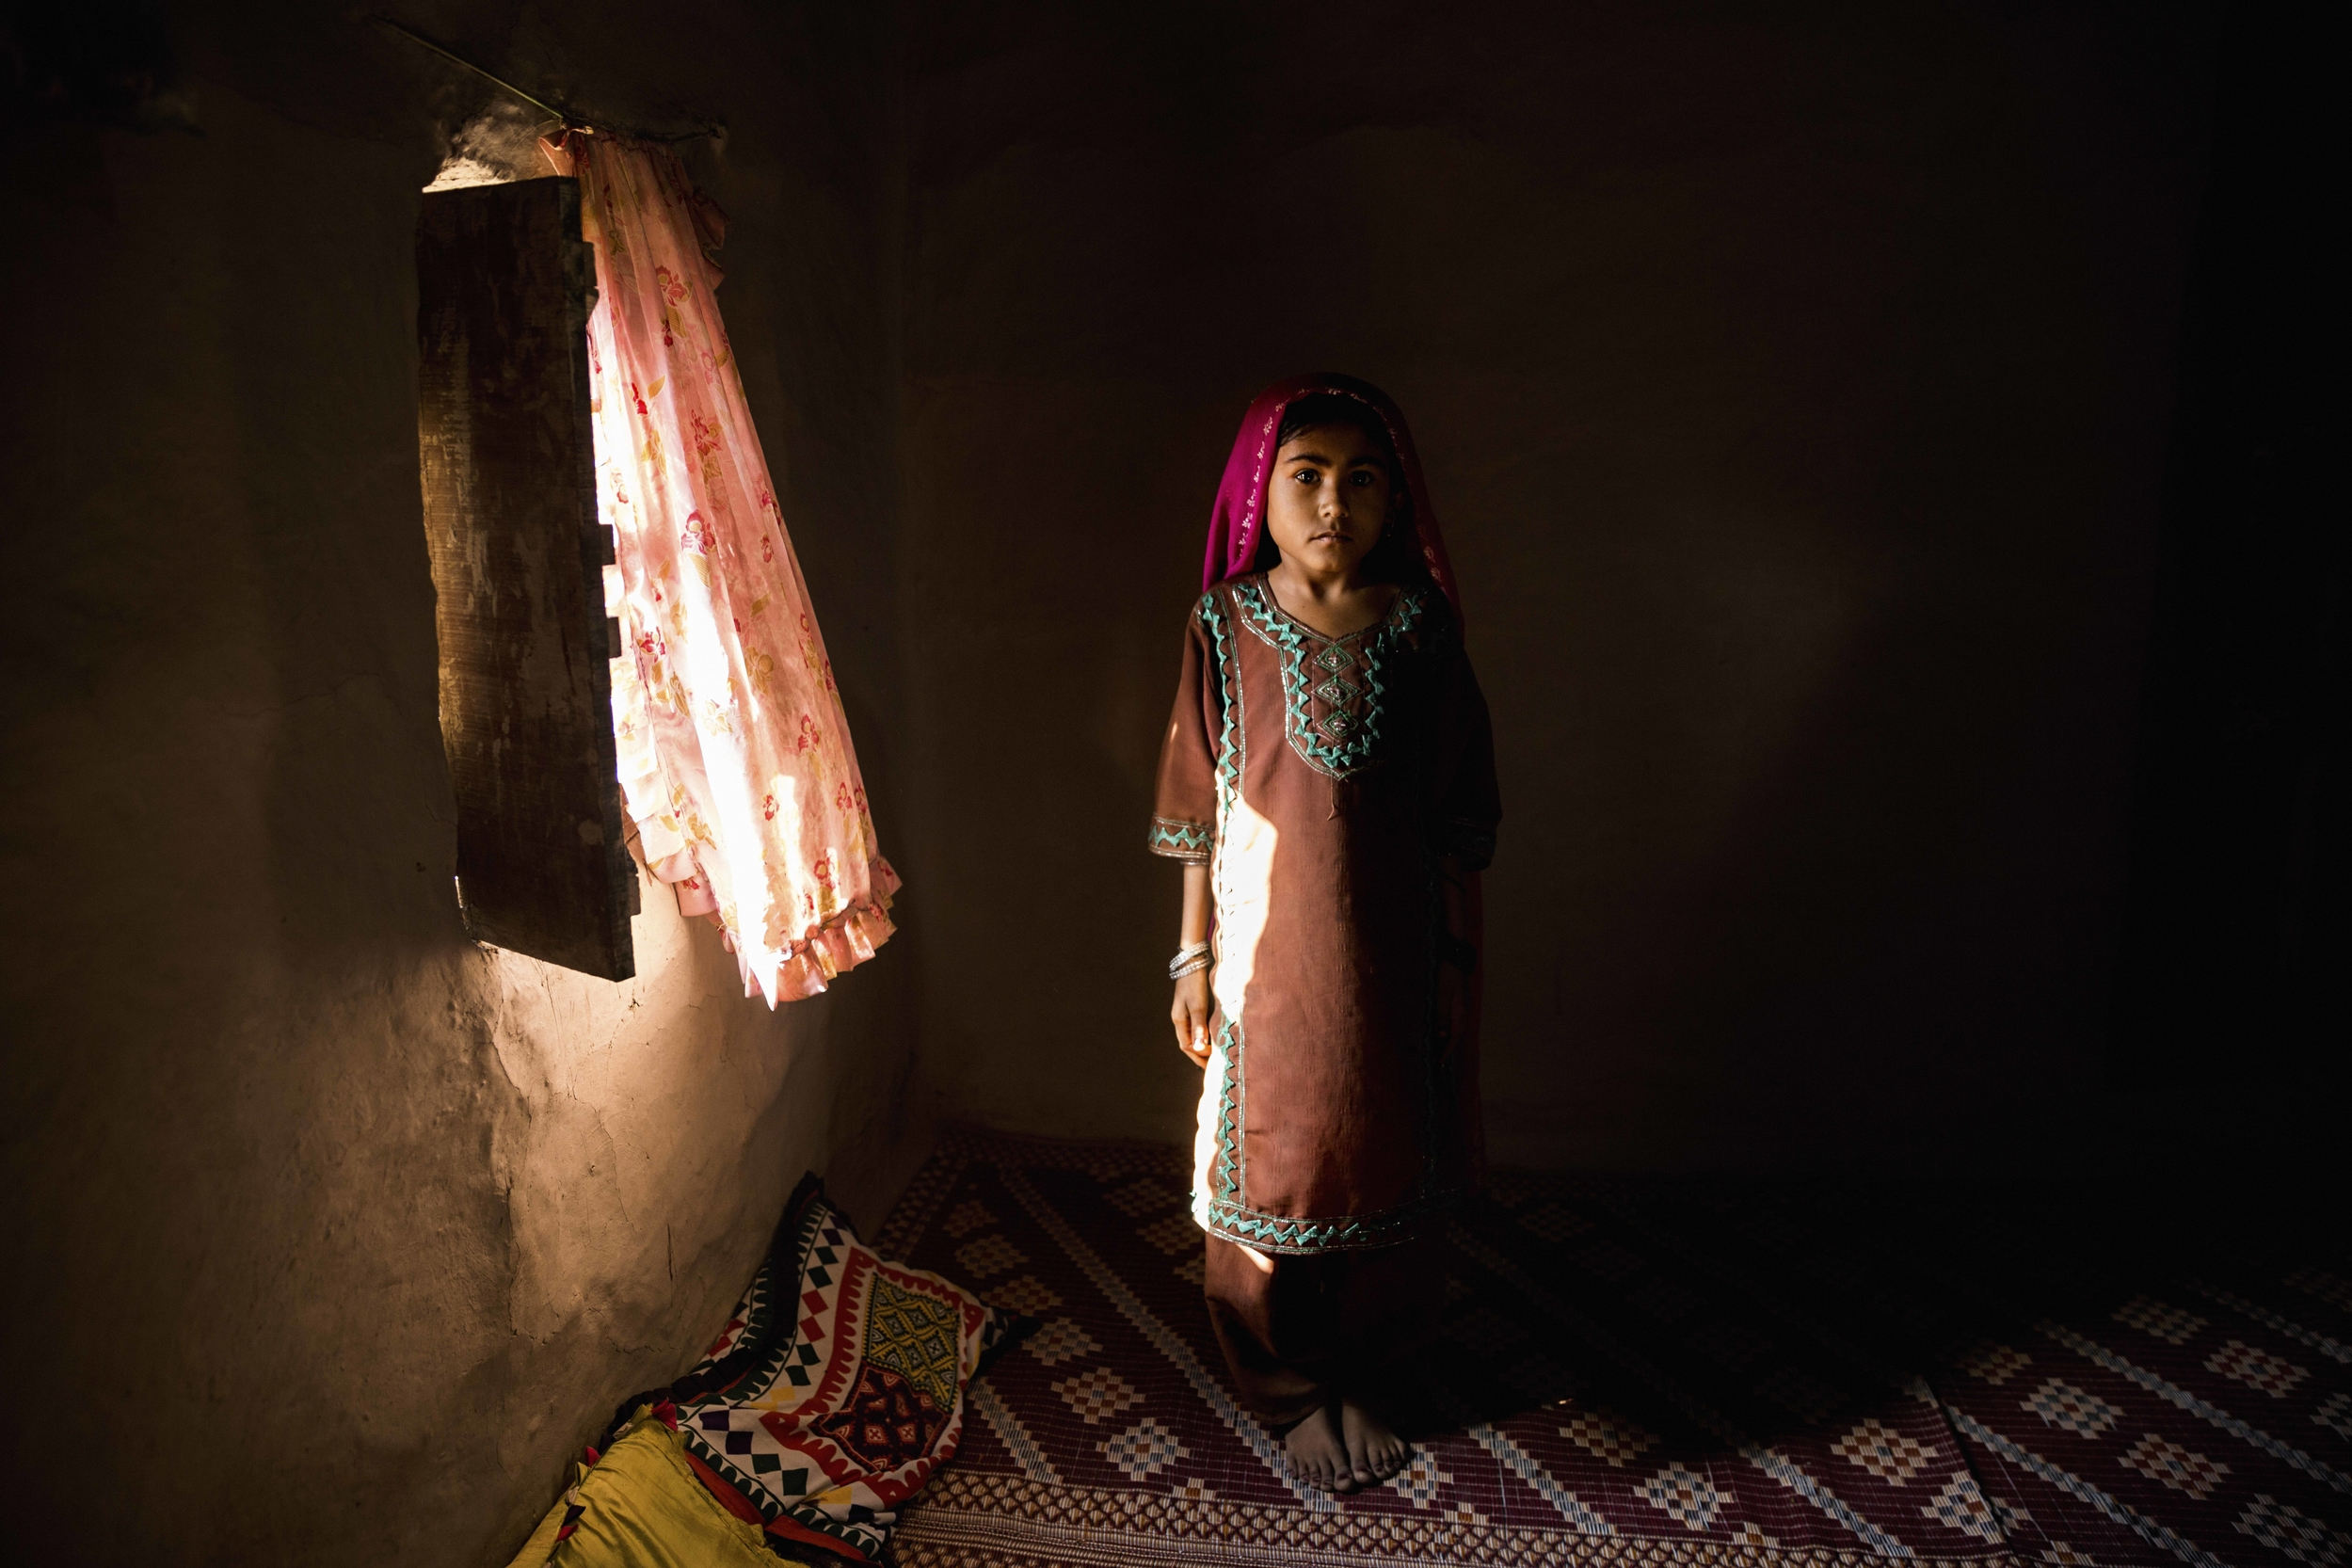 11-year-old Shaneela stands by a window inside her one-room home in Muhammad Ali Bhar. Her parents do not allow her to attend school, although she often sneaks into the classroom anyway. Her parents say they will send her to school when there is access to water and a separate functioning toilet for girls.